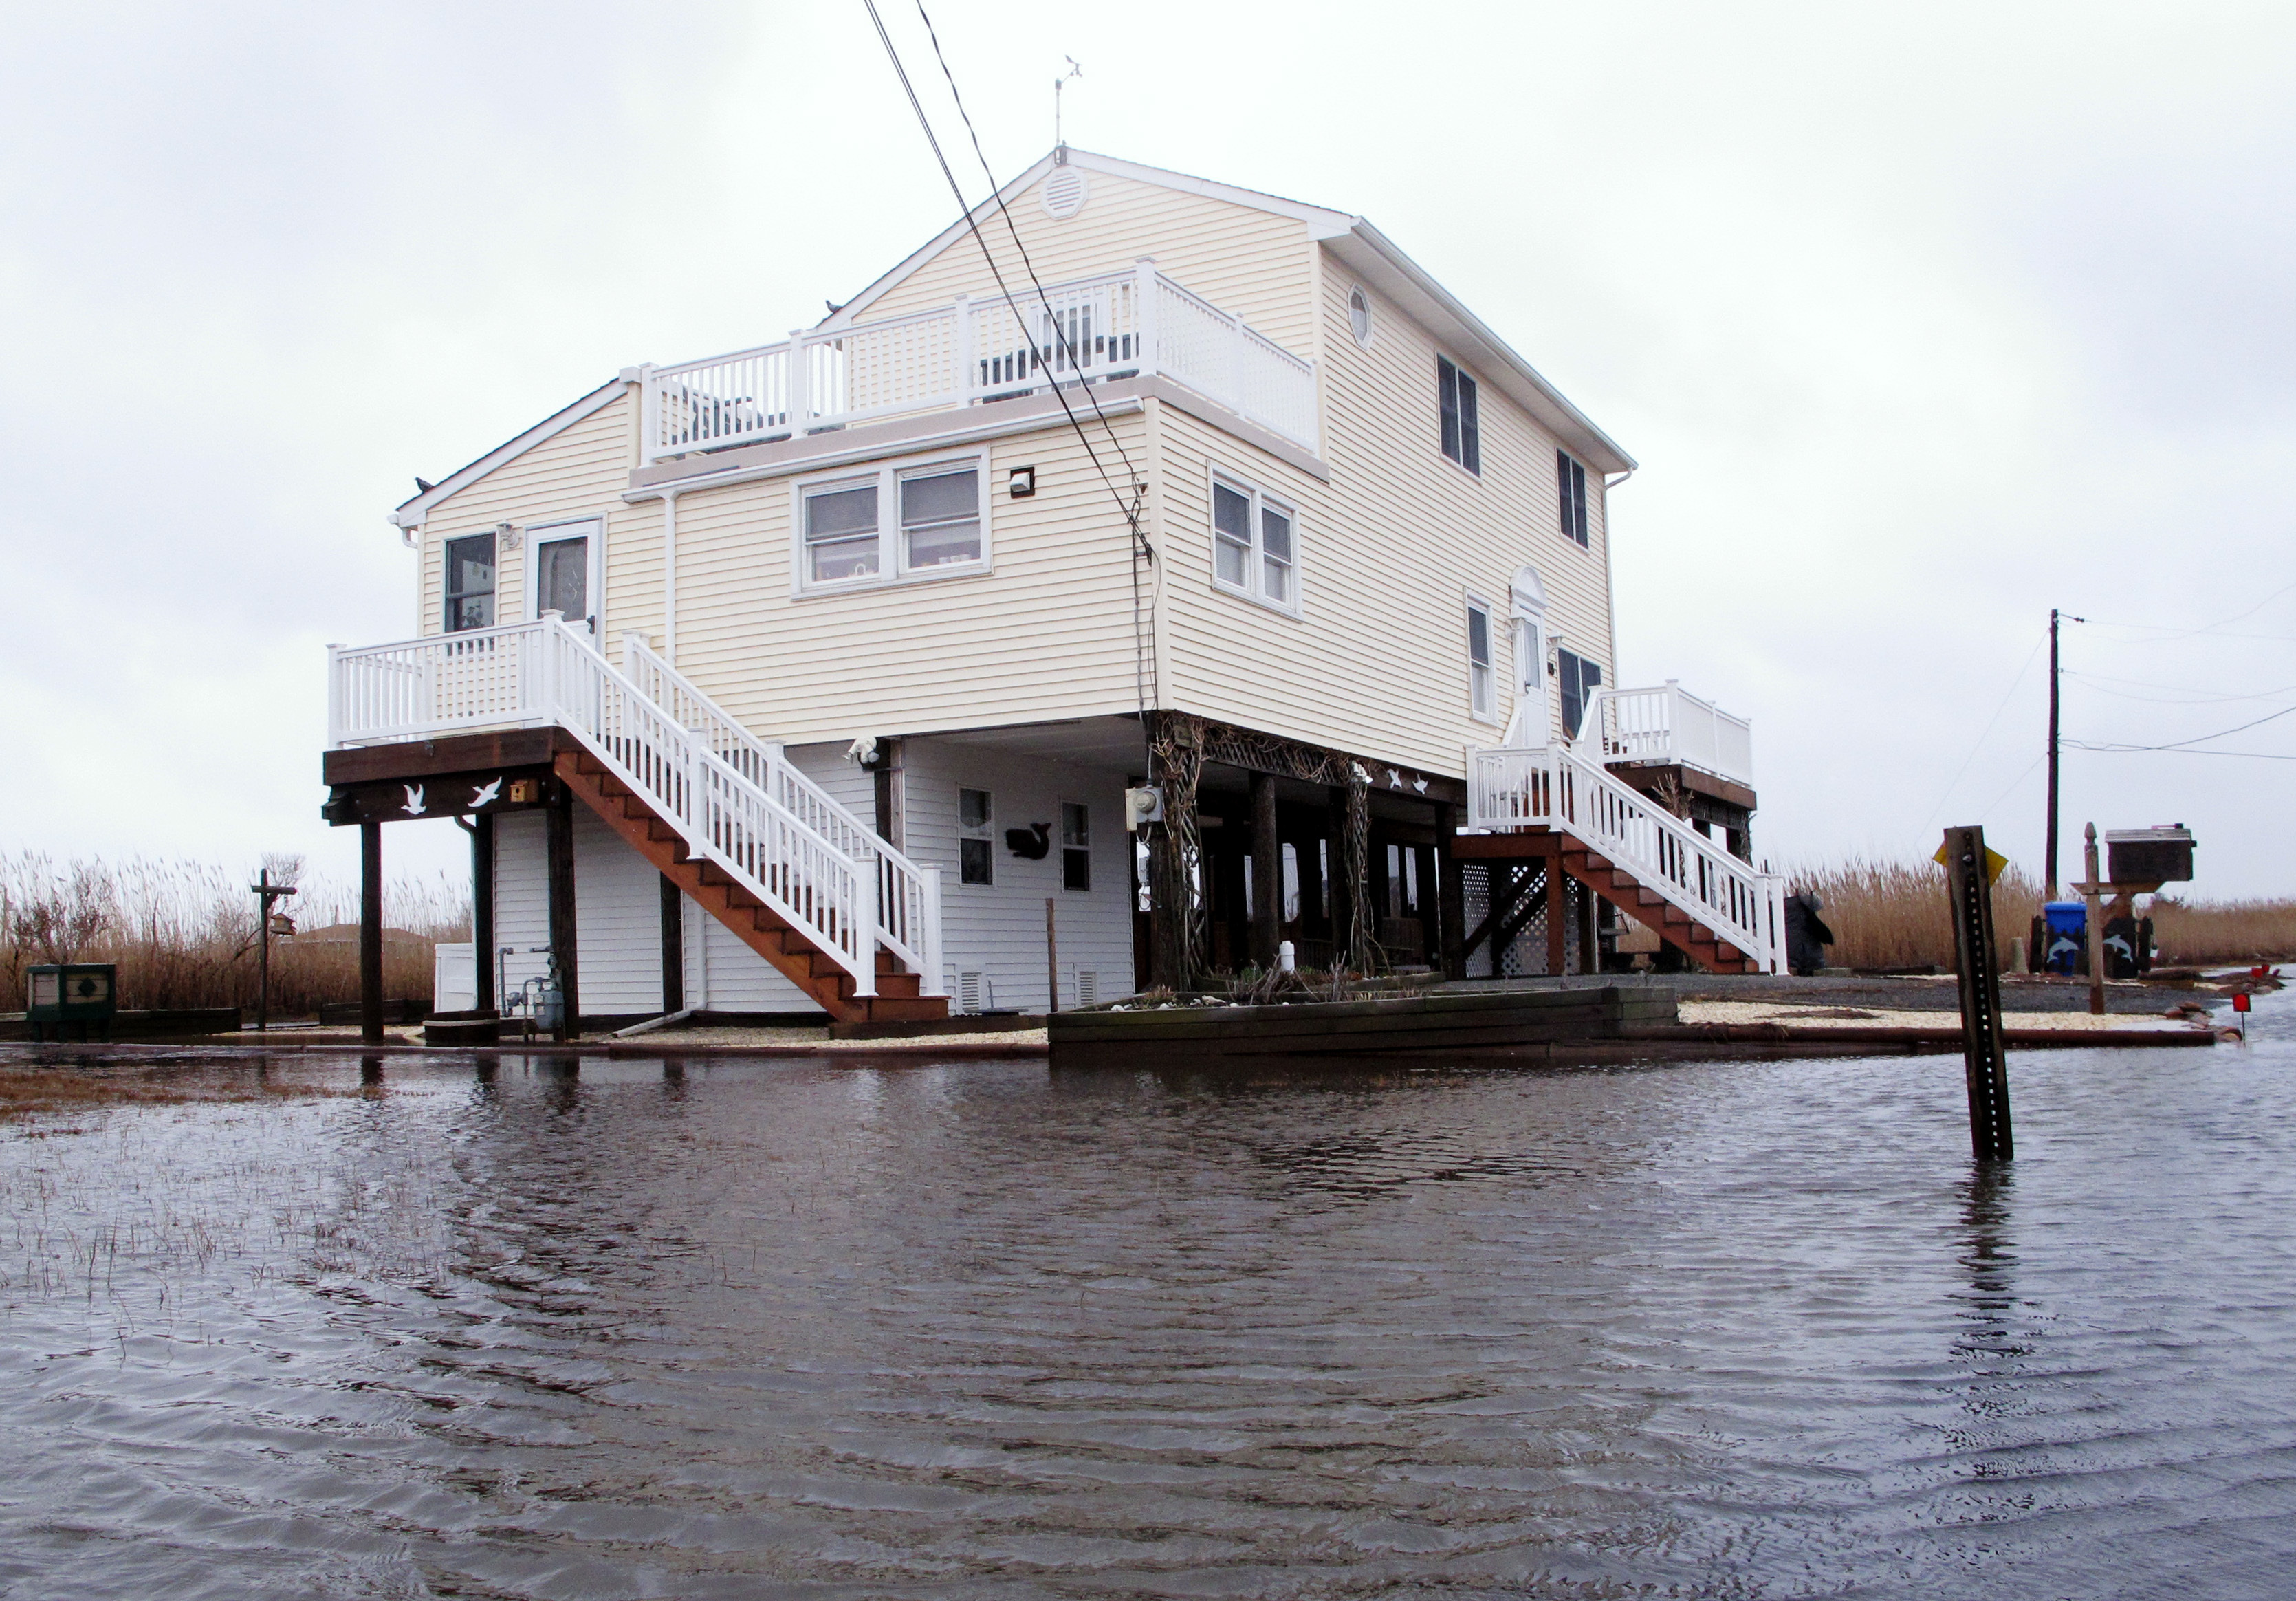 The Property Value Of Your Coastal Home May Drop Significantly As Rising Seas Inch Closer Accuweather